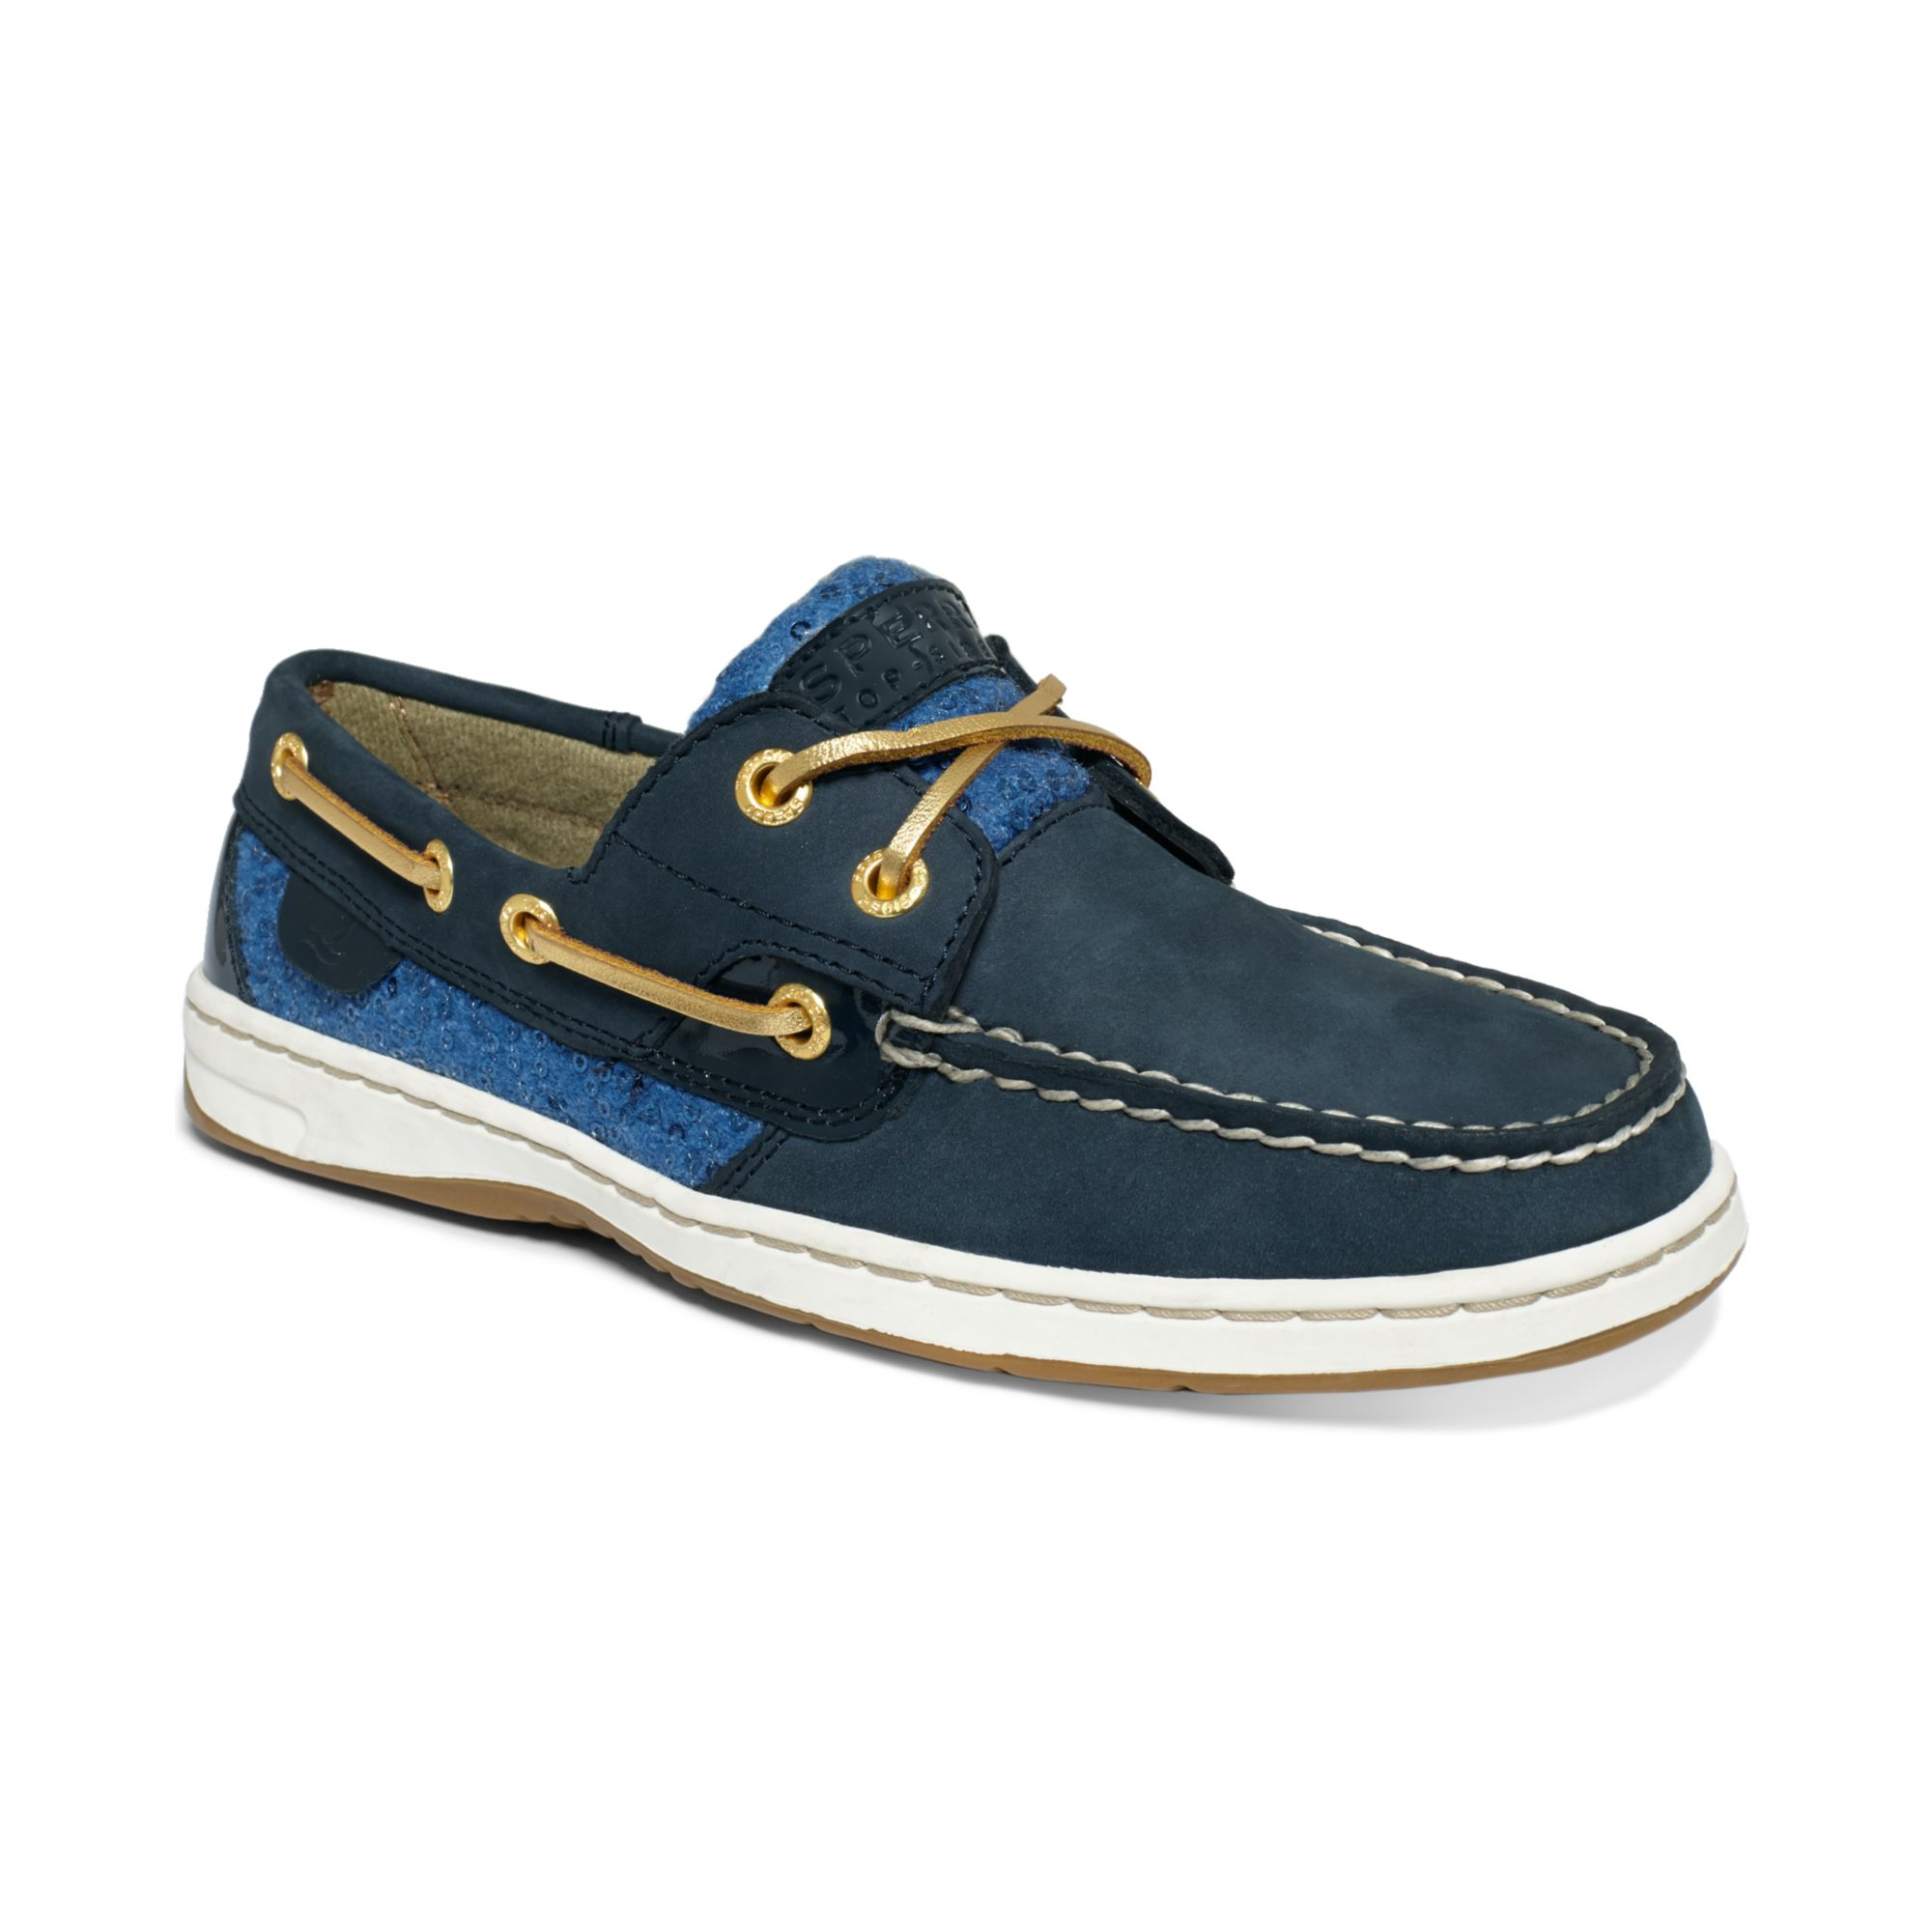 Sperry Blue Sequin Shoes